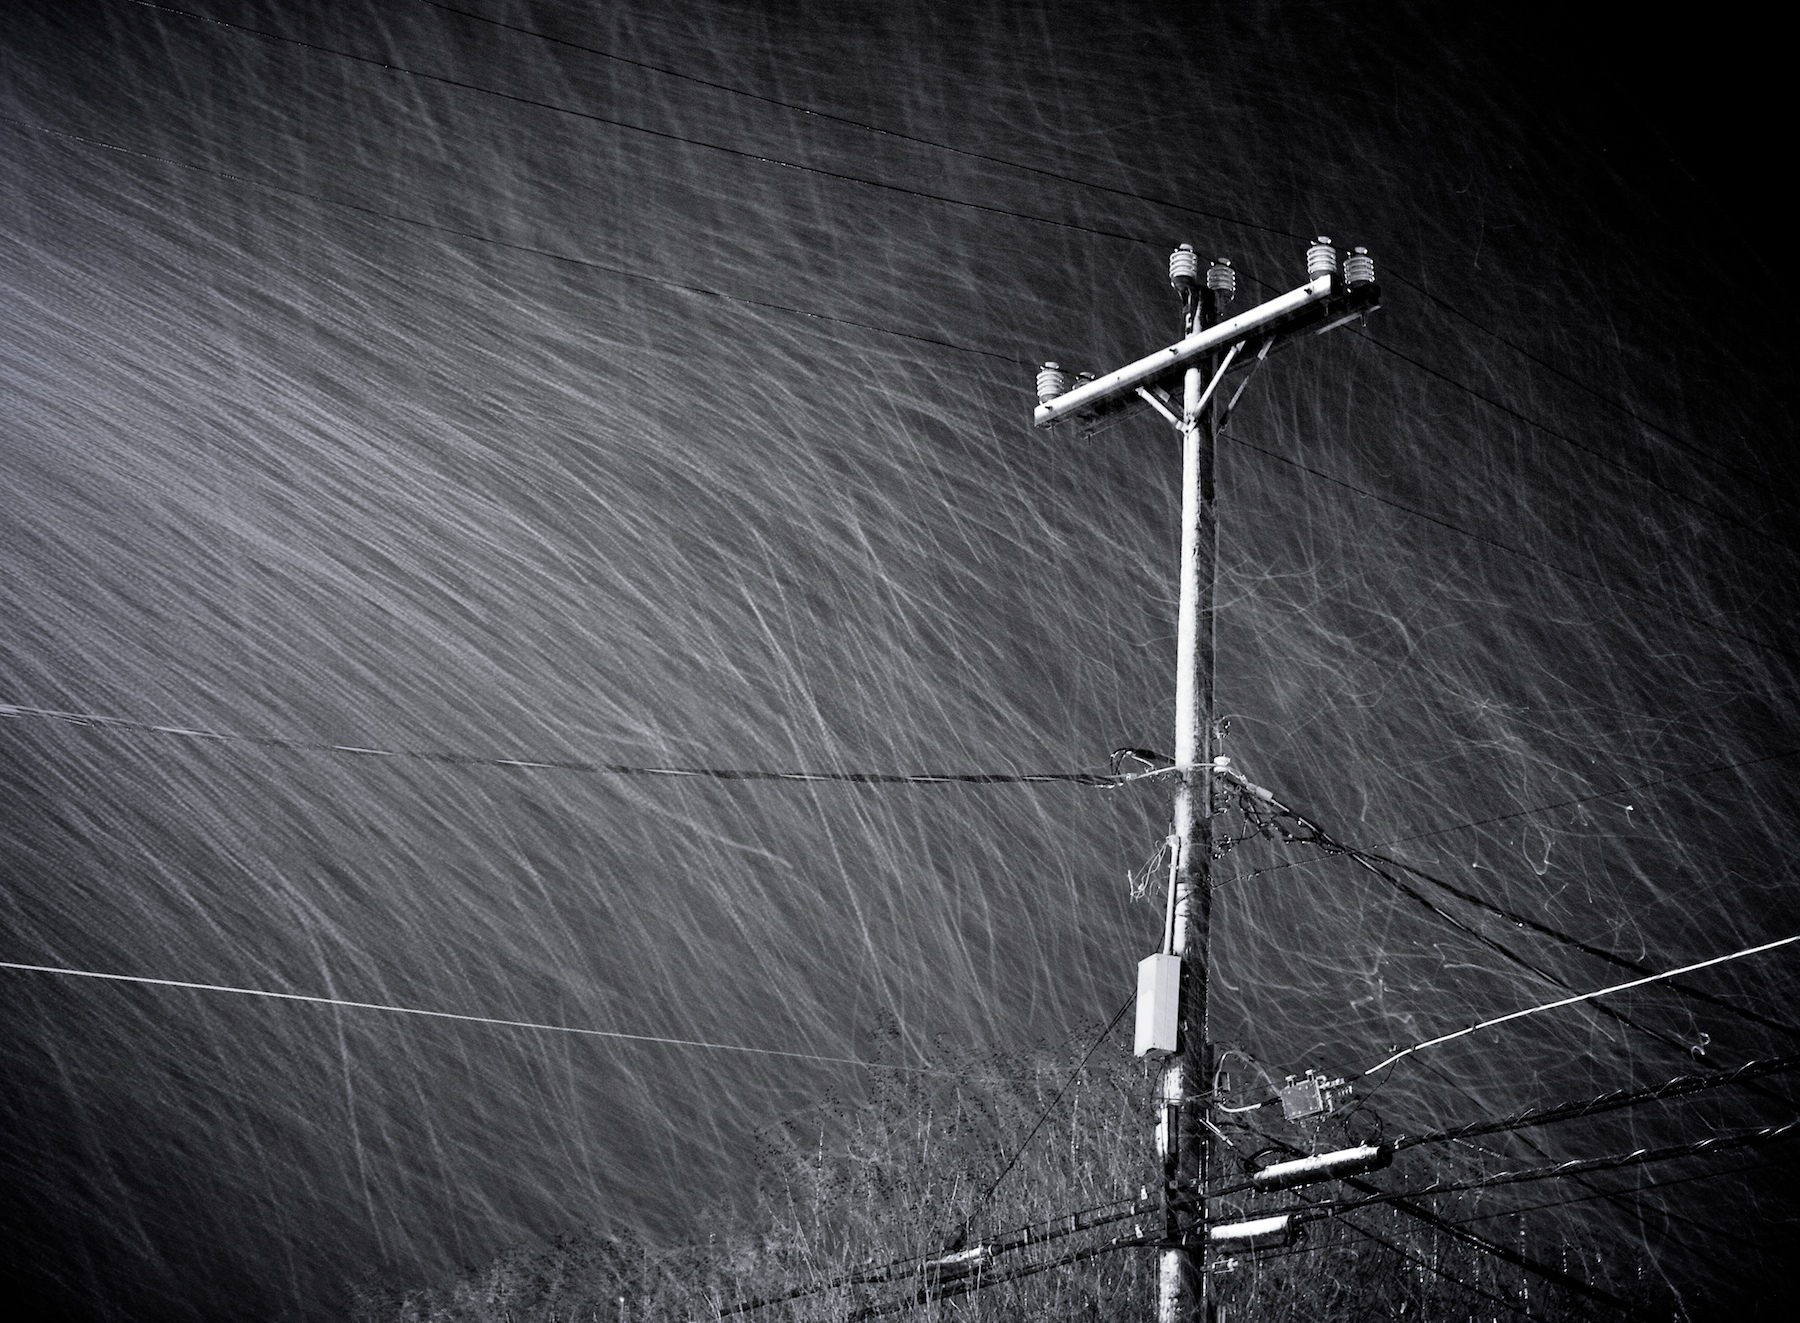 61/365: Winter Continues.